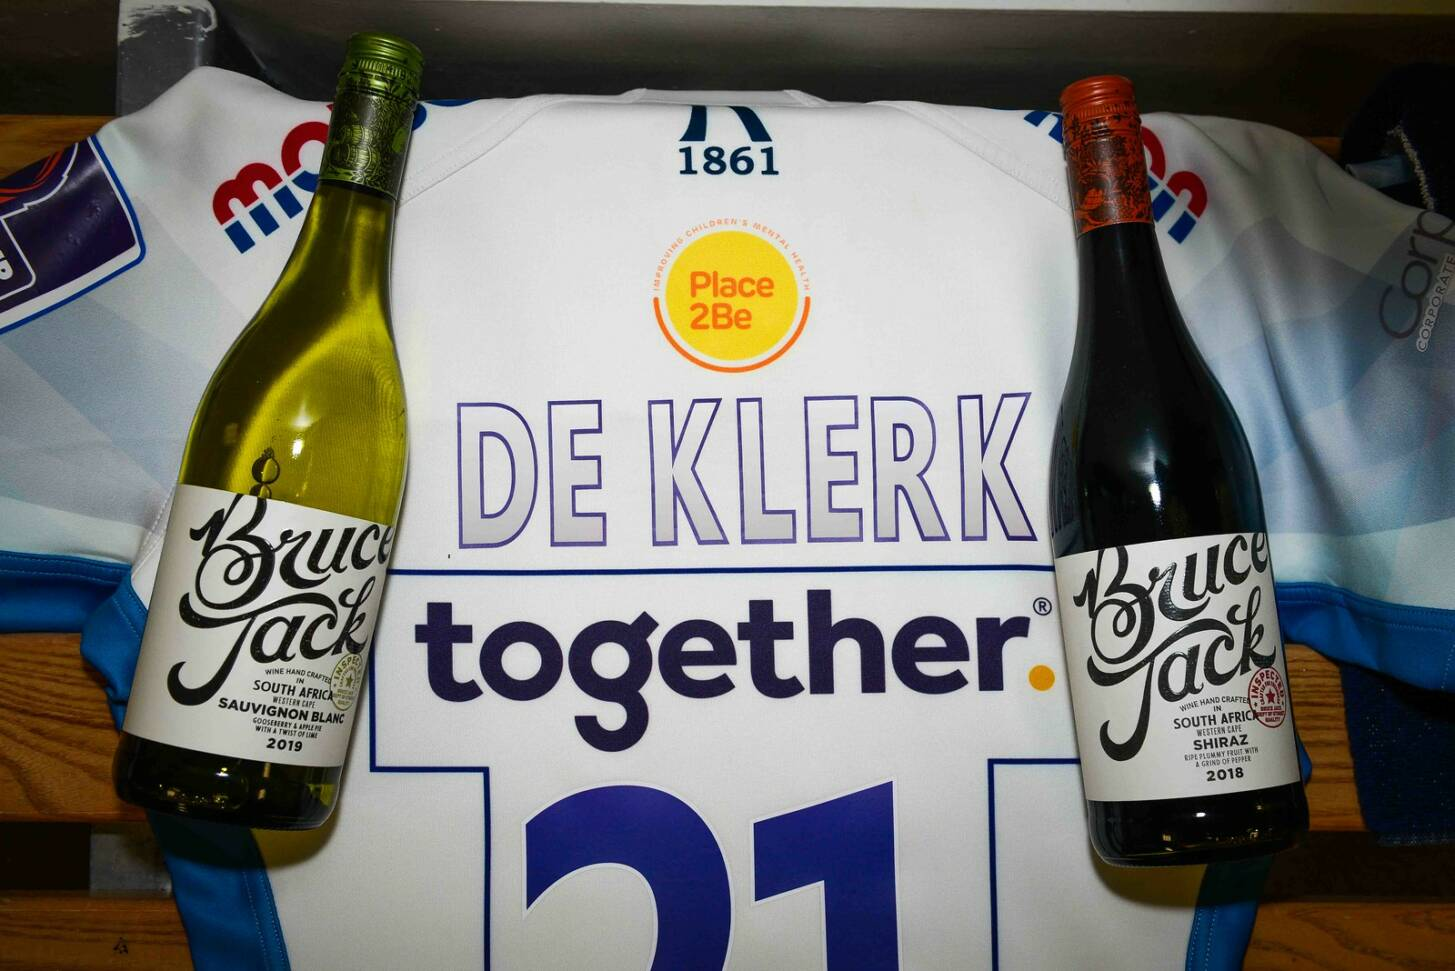 Sale Sharks toast first South African partnership with global wine brand